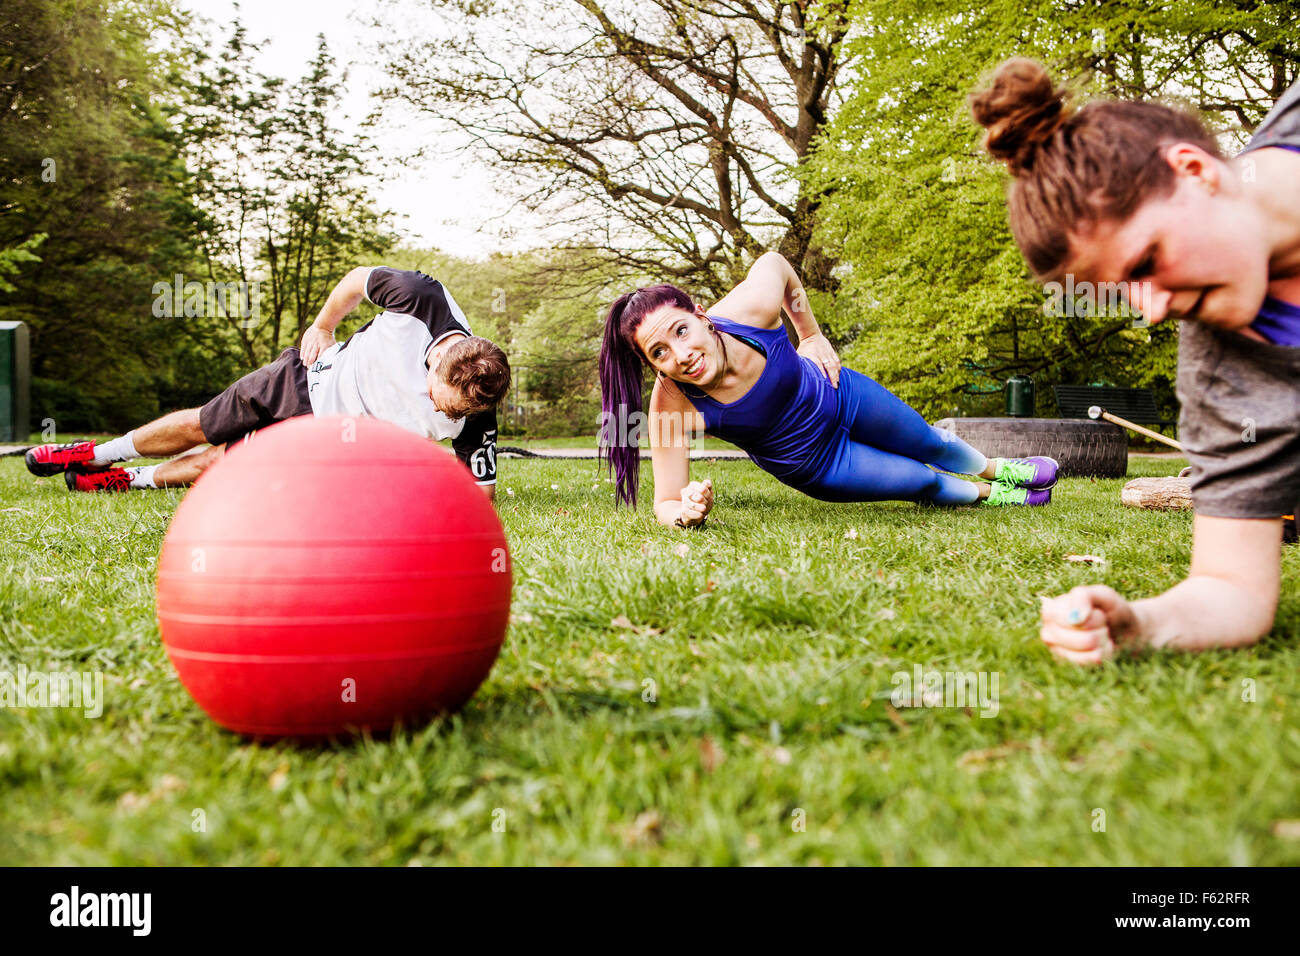 People doing side plank on grassy field at park - Stock Image